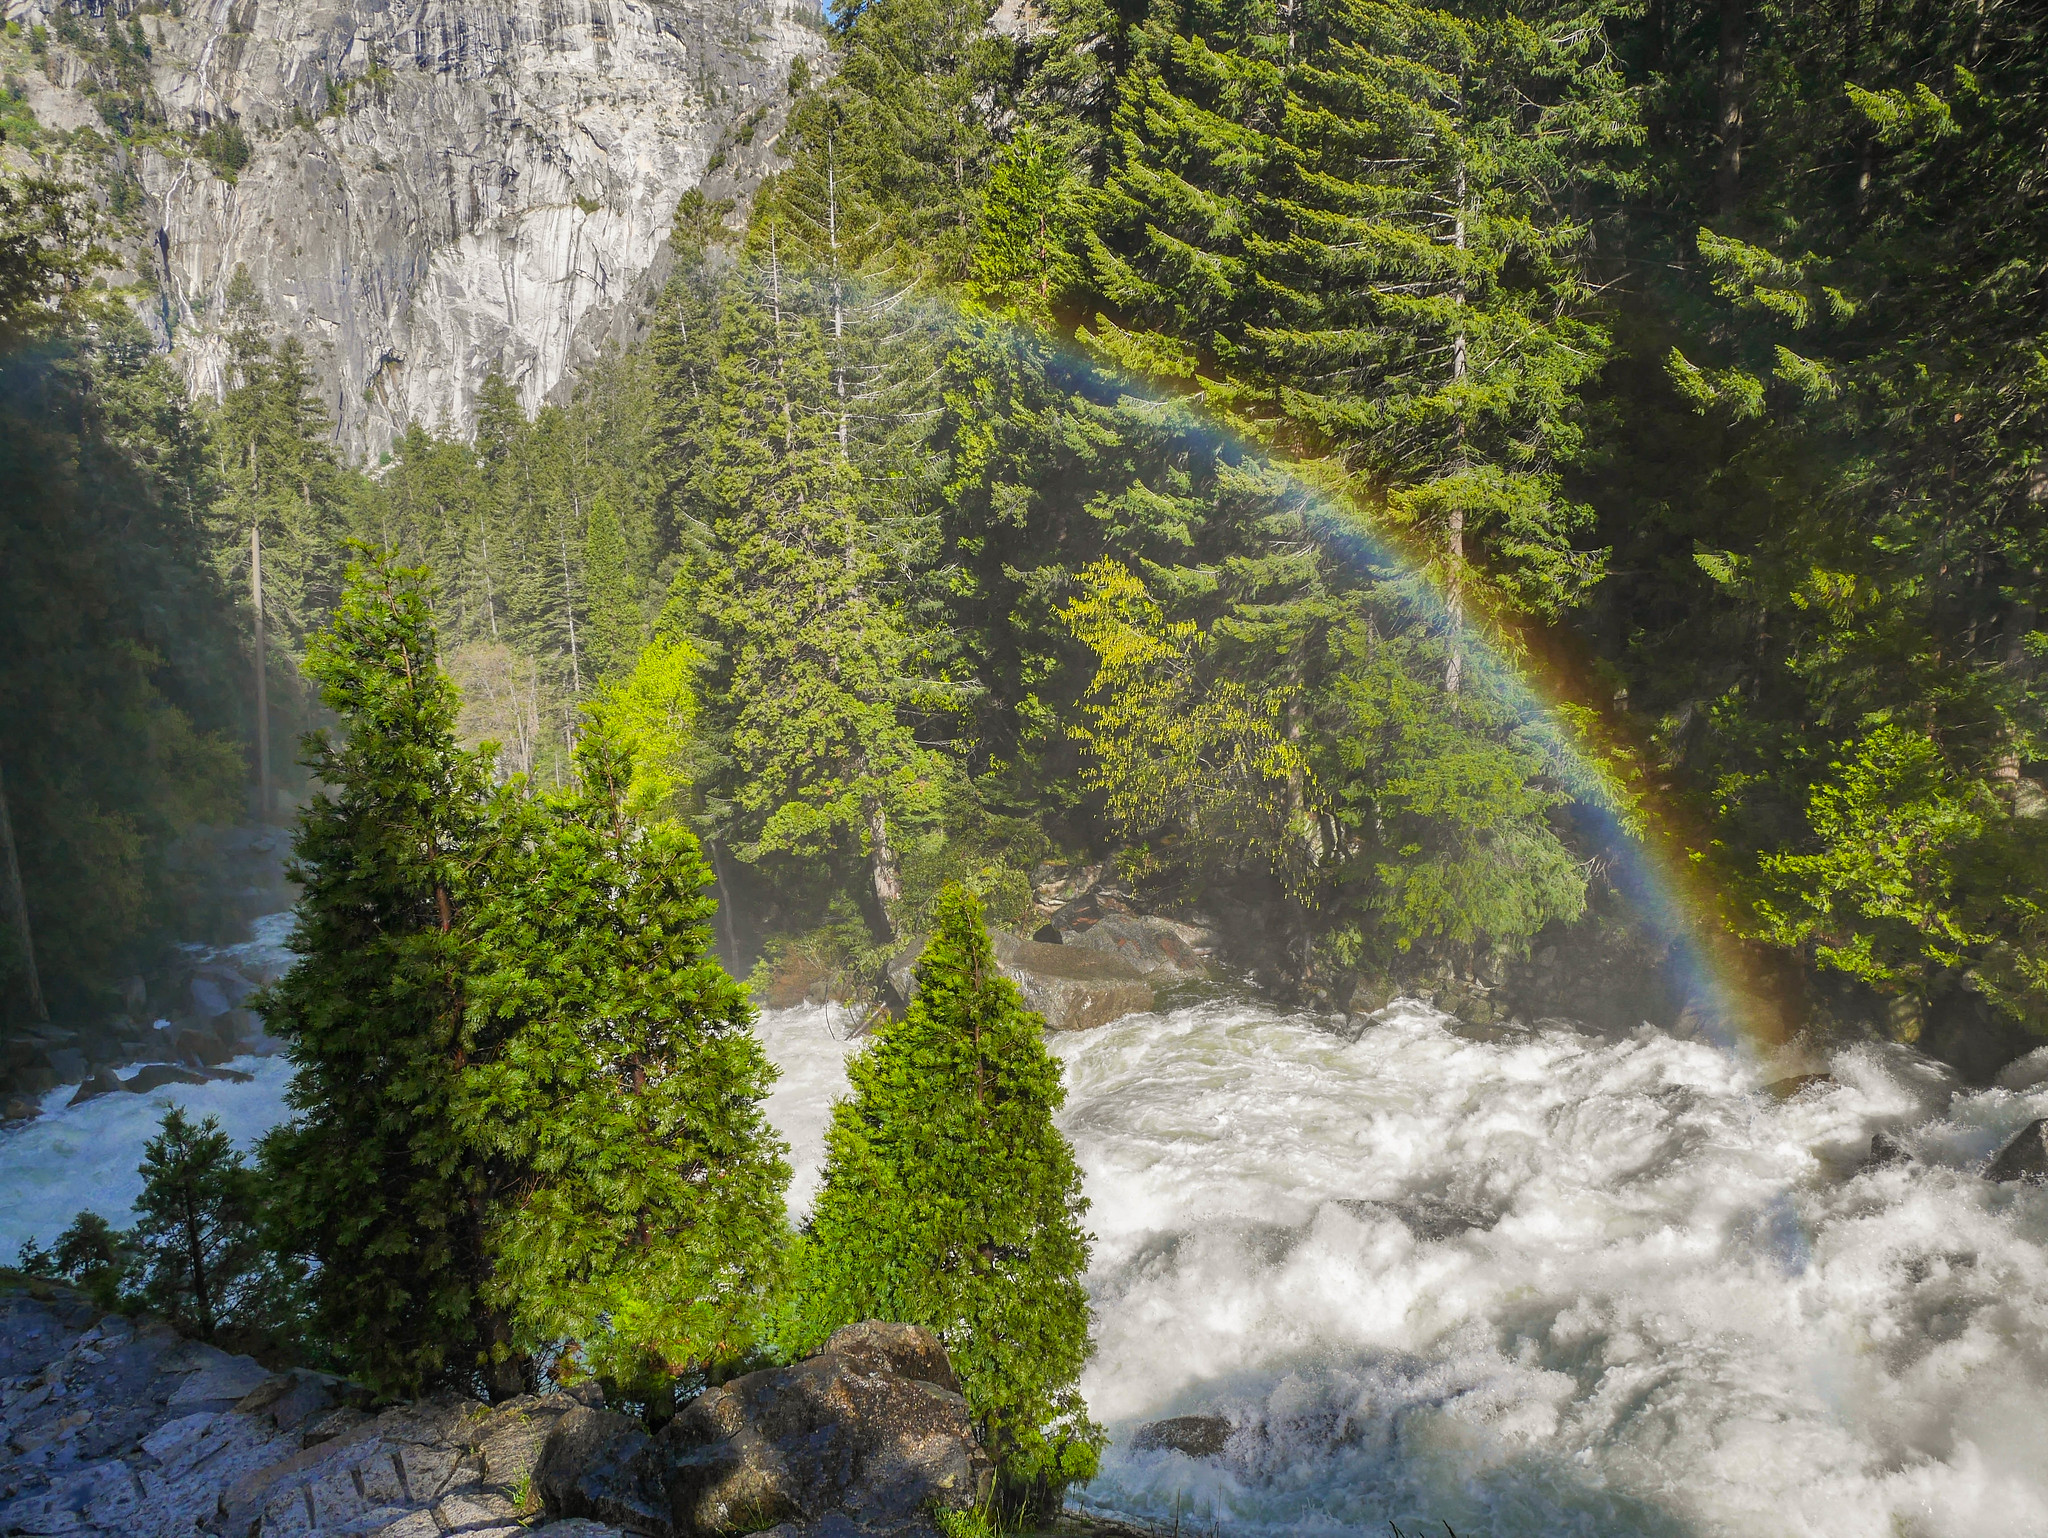 Rainbow below Vernal Falls